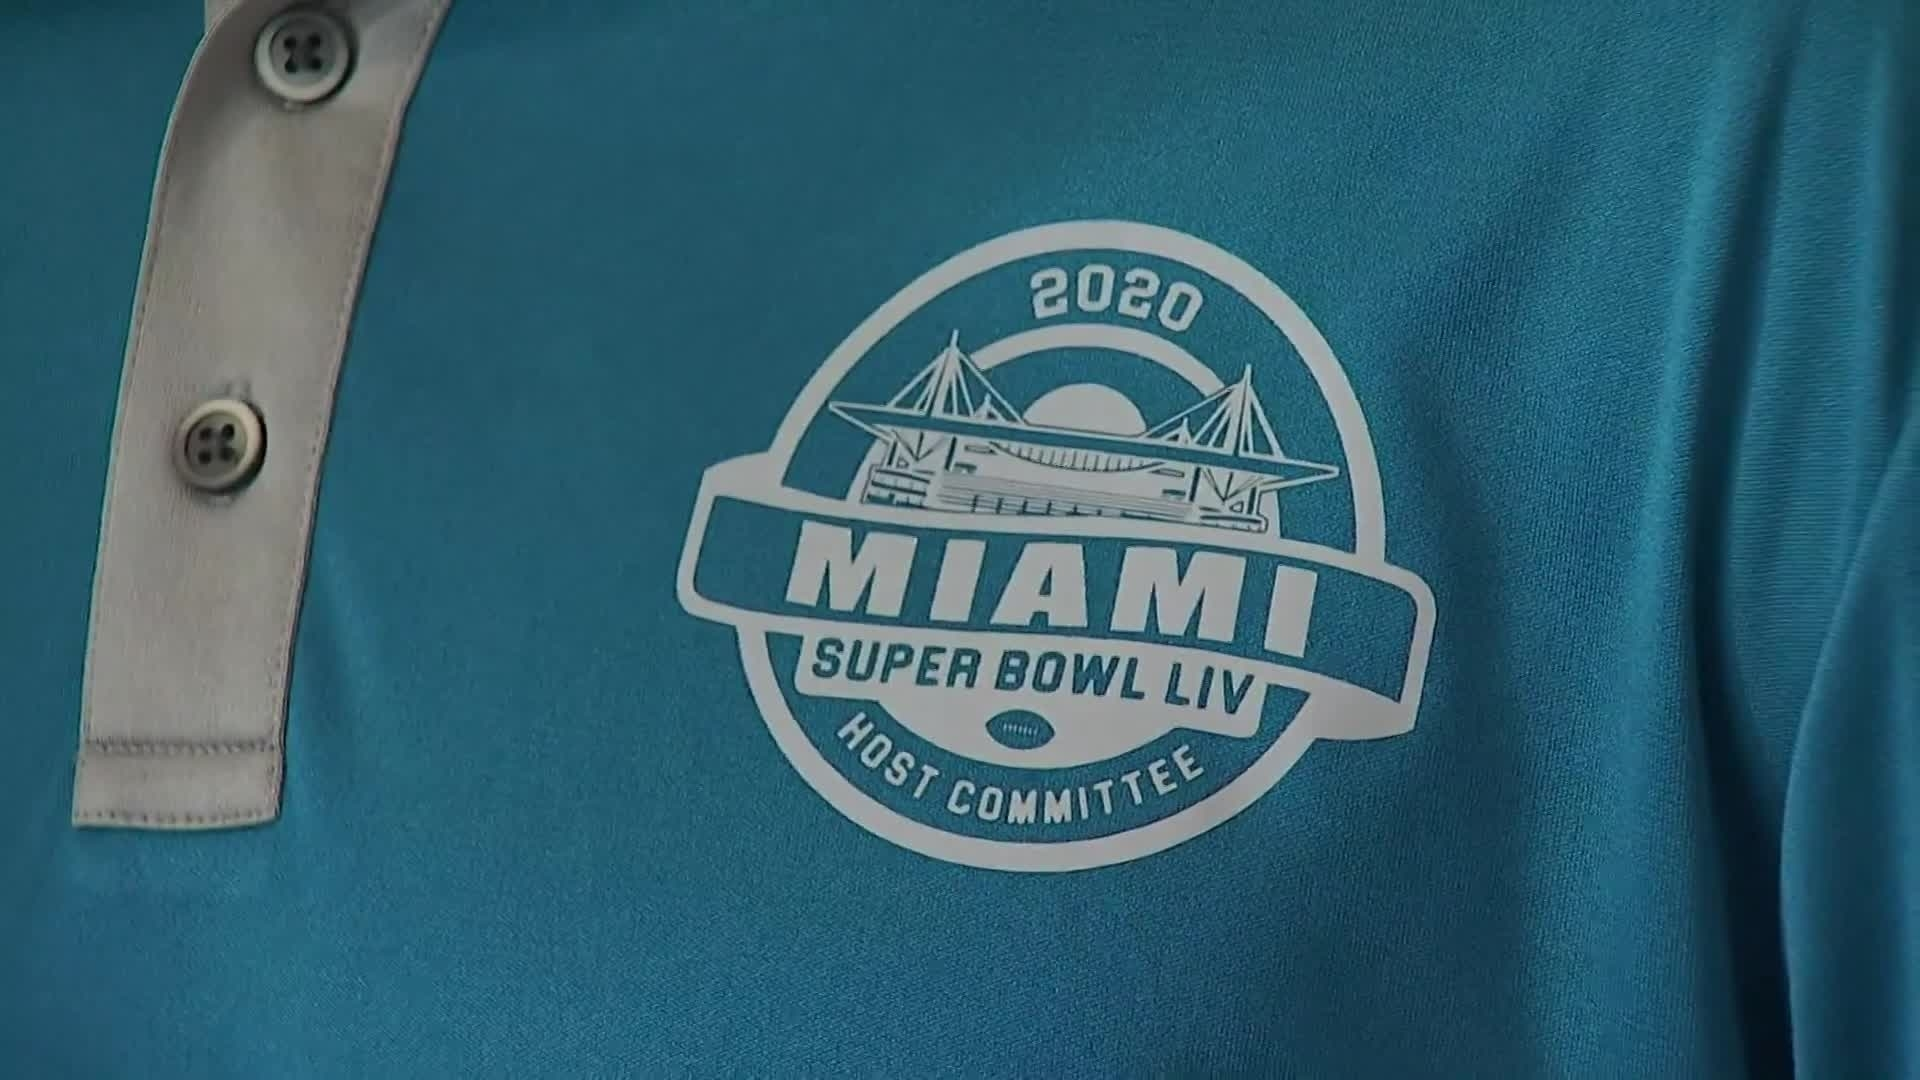 Officials Looking For Super Bowl 2020 Volunteers   Wfla intended for Volunteer For Miami Super Bowl